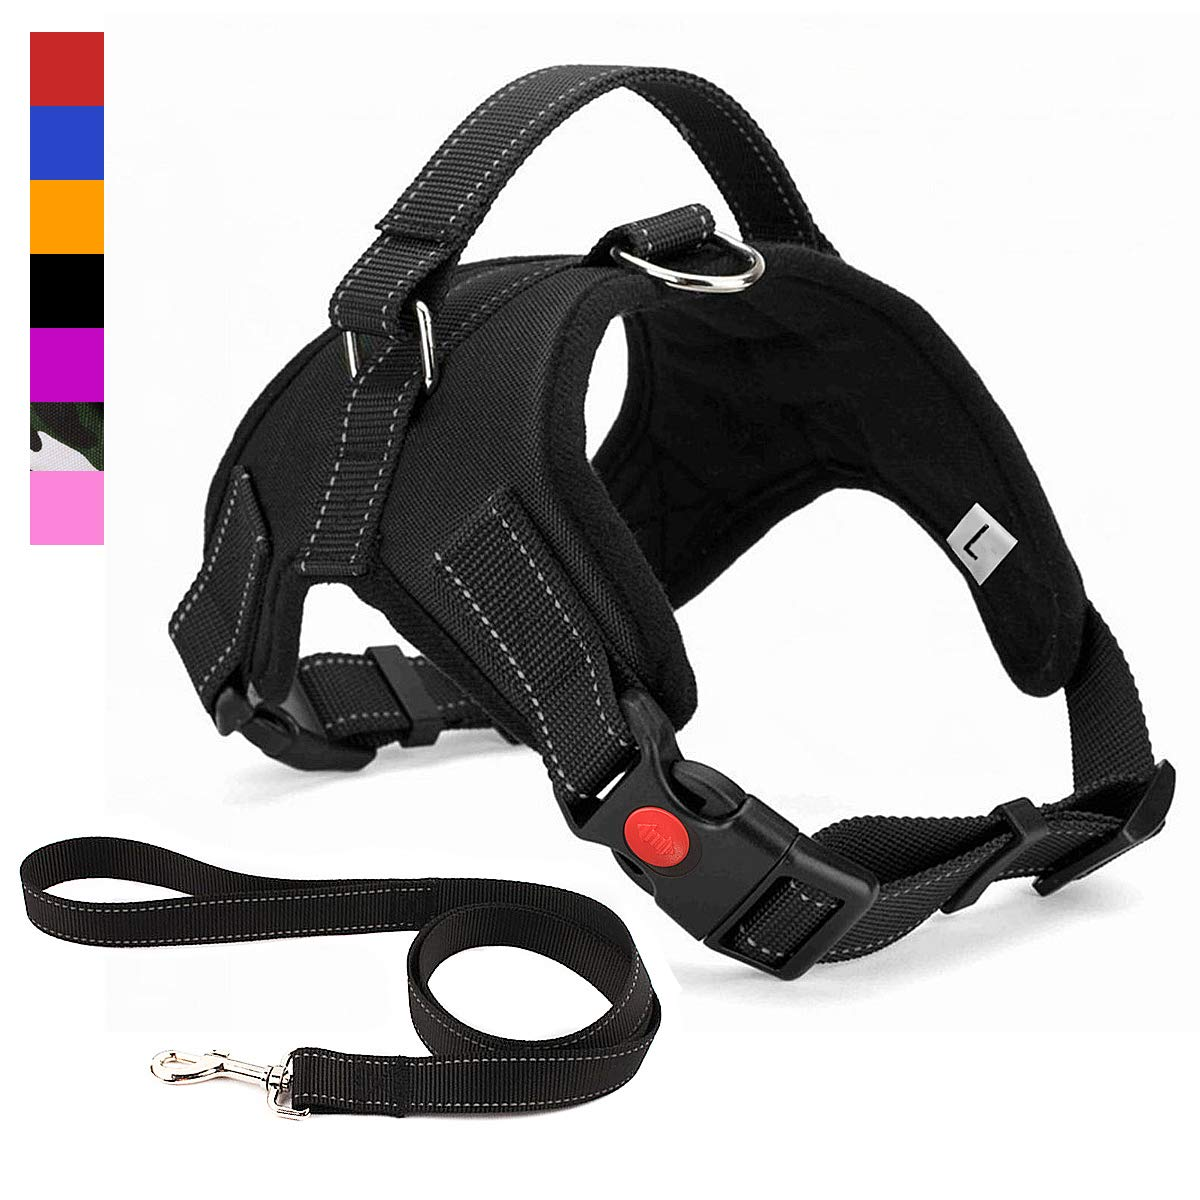 Musonic No Pull Dog Harness, Breathable Adjustable Comfort, Free Leash Included, for Small Medium Large Dog, Best for Training Walking Black